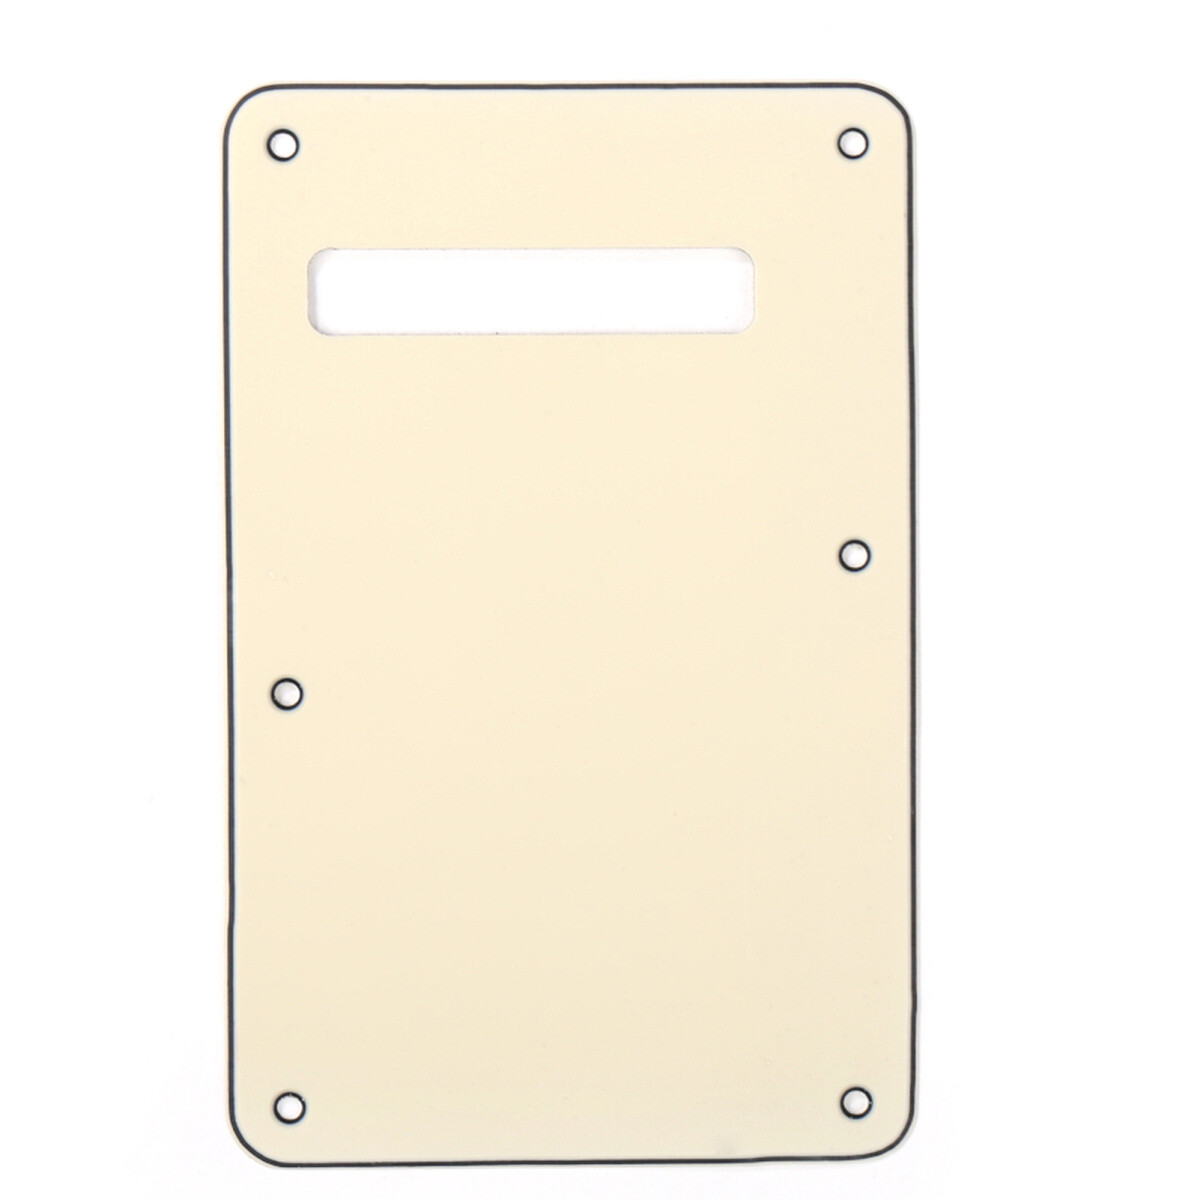 Brio Cream Modern Style Back Plate Tremolo Cover 3 ply - US/Mexican Fender®Strat® Fit